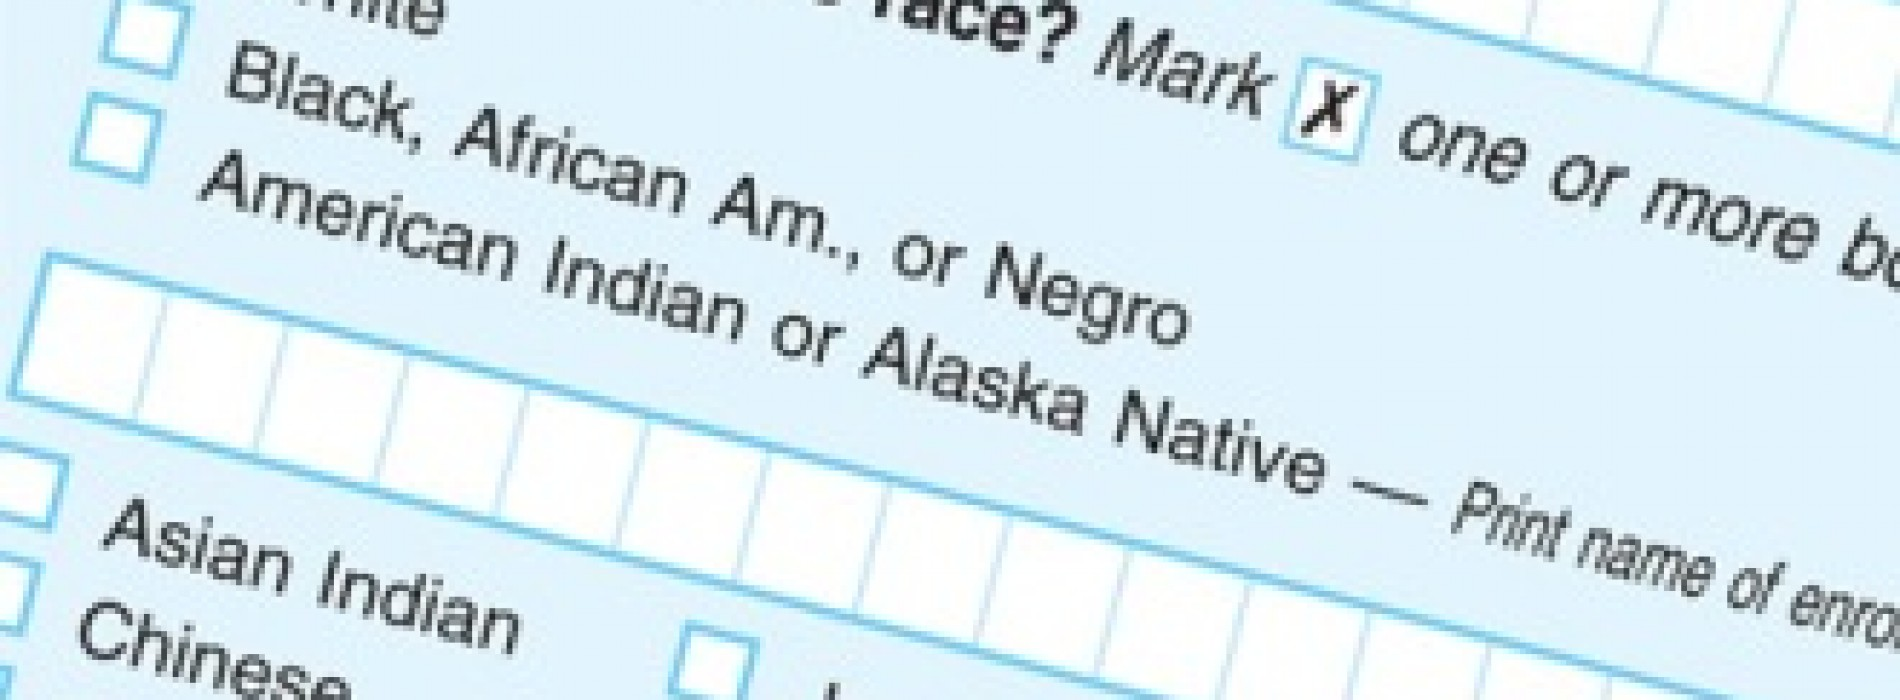 The 2010 Census: Race and Ethnicity